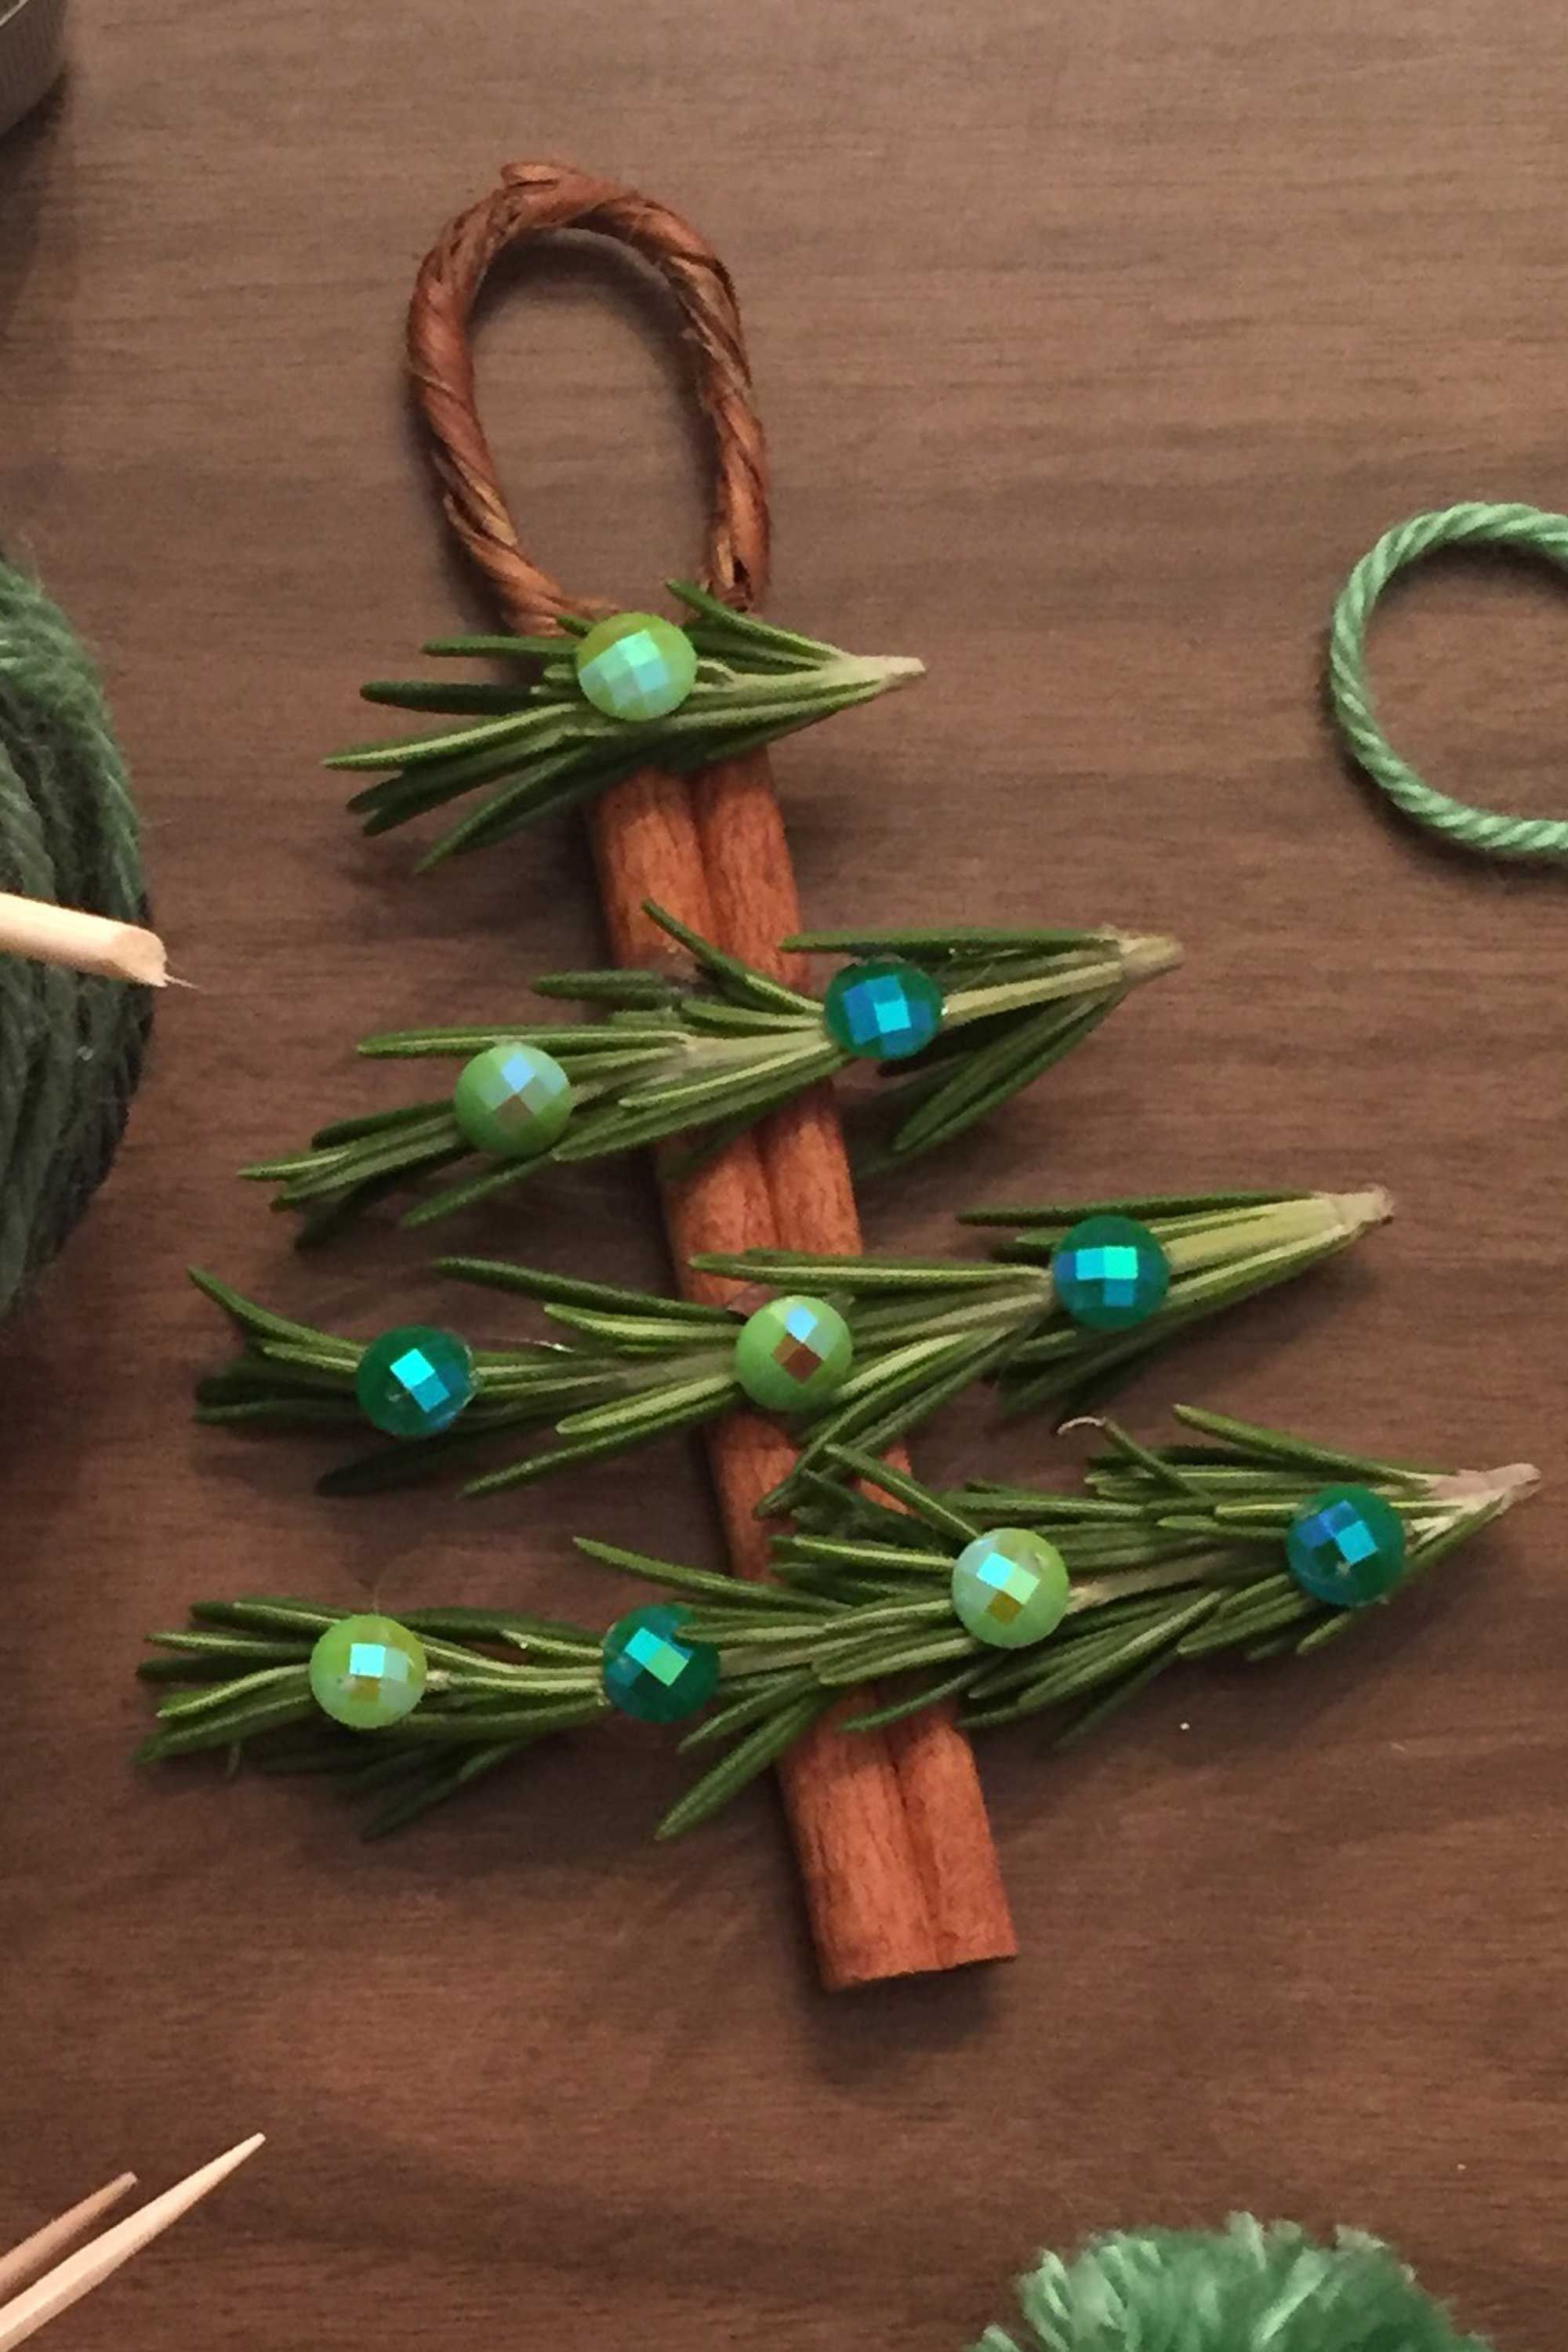 45 Diy Christmas Ornaments That Will Make Your Tree Truly One Of A